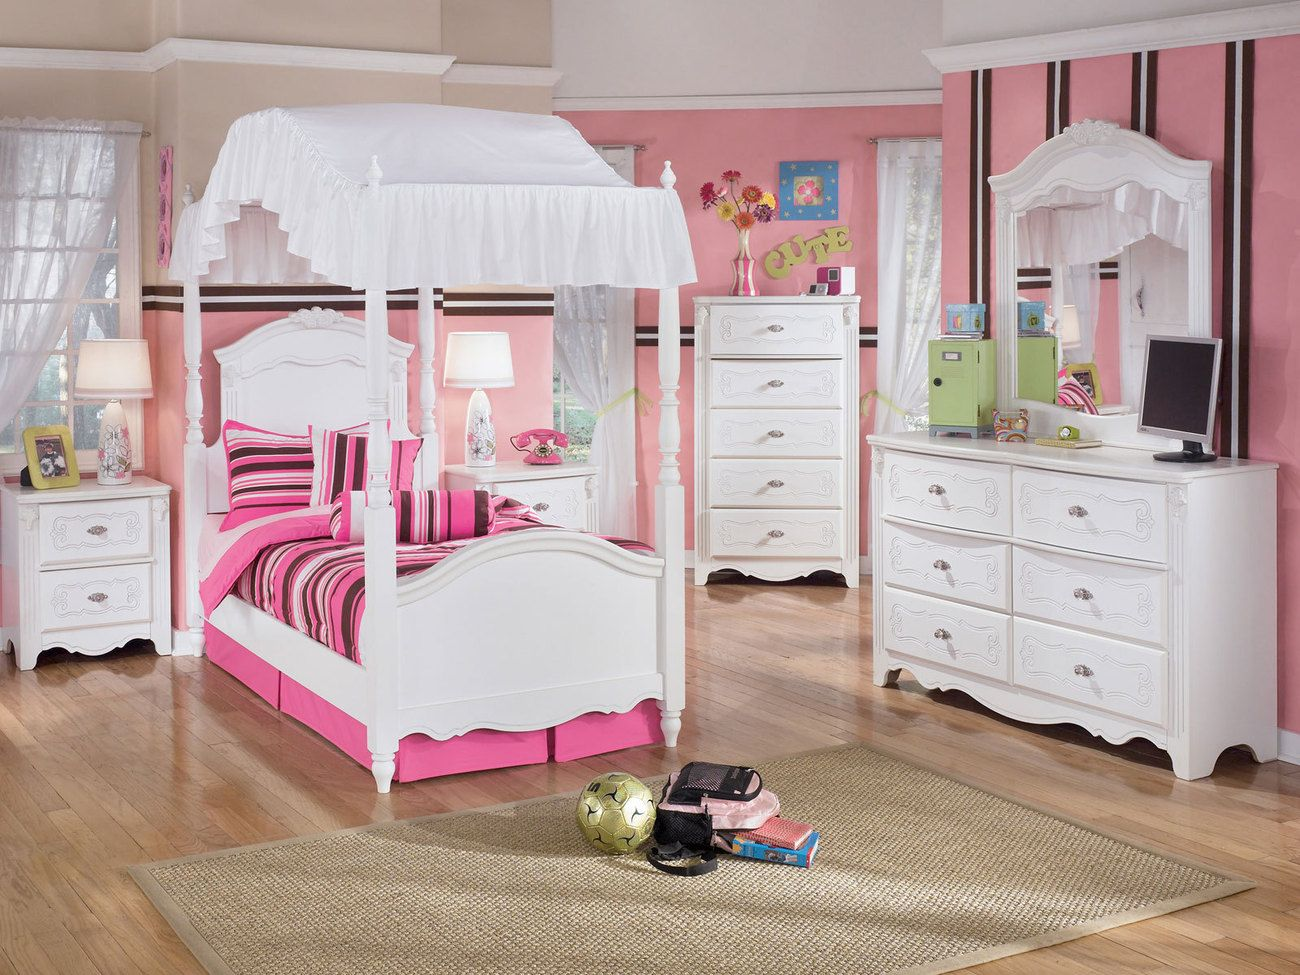 Chic Twin Bedroom Set With White Shabby Furnitures Includes Dresser And Mirror Canopy